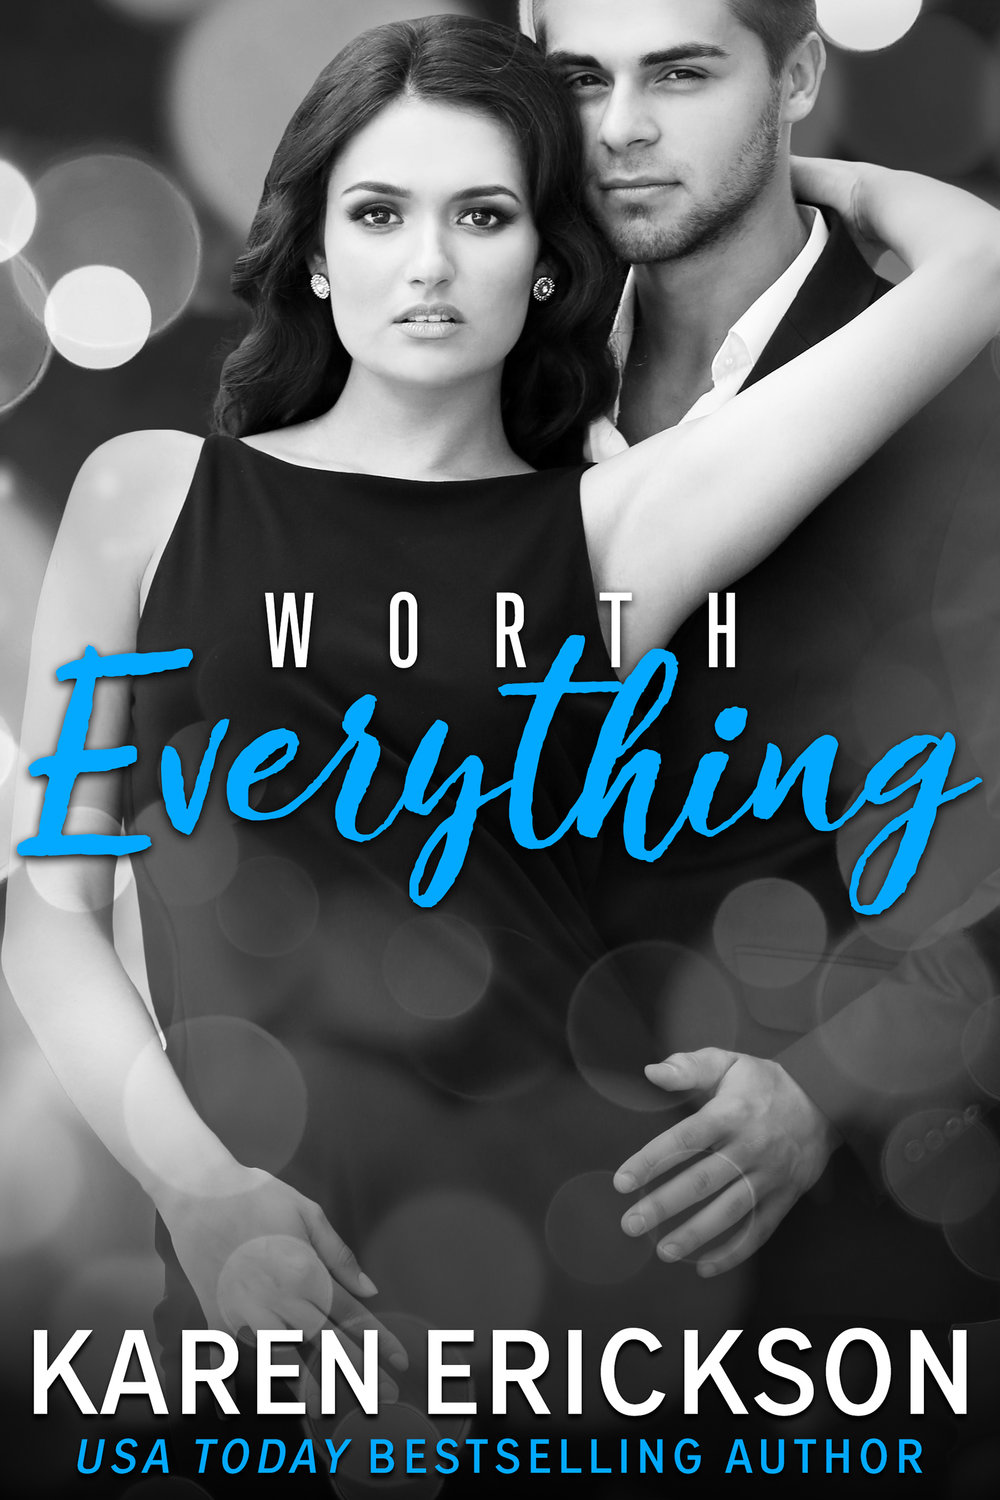 Worth Everything - Worth It, Book 4Amazon • B&N • iBooks • Kobo • GooglePlayCan you find love when you no longer know who you are?Anastasia Renaldi's life is a lie. In one fell swoop, she loses her job, her family, and her very identity. Can she truly be the illegitimate daughter of the long-dead Michael Worth?Attorney Gavin Westmore knows two things—how much Worth Luxury Goods is worth, and that his new client is a gold-digger. But as long as he can collect his fee, what does he care how calculating and devious she is?After numerous meetings that turn into late nights that turn into even more, he starts to uncover the hurt and confused woman Stasia is underneath. If part of this company rightfully belongs to her, he has no doubts she'll be a valuable asset.But once they're done untangling the web of deceit that brought them here, will there be any room left in her life for love?Amazon • B&N • iBooks • Kobo • GooglePlay